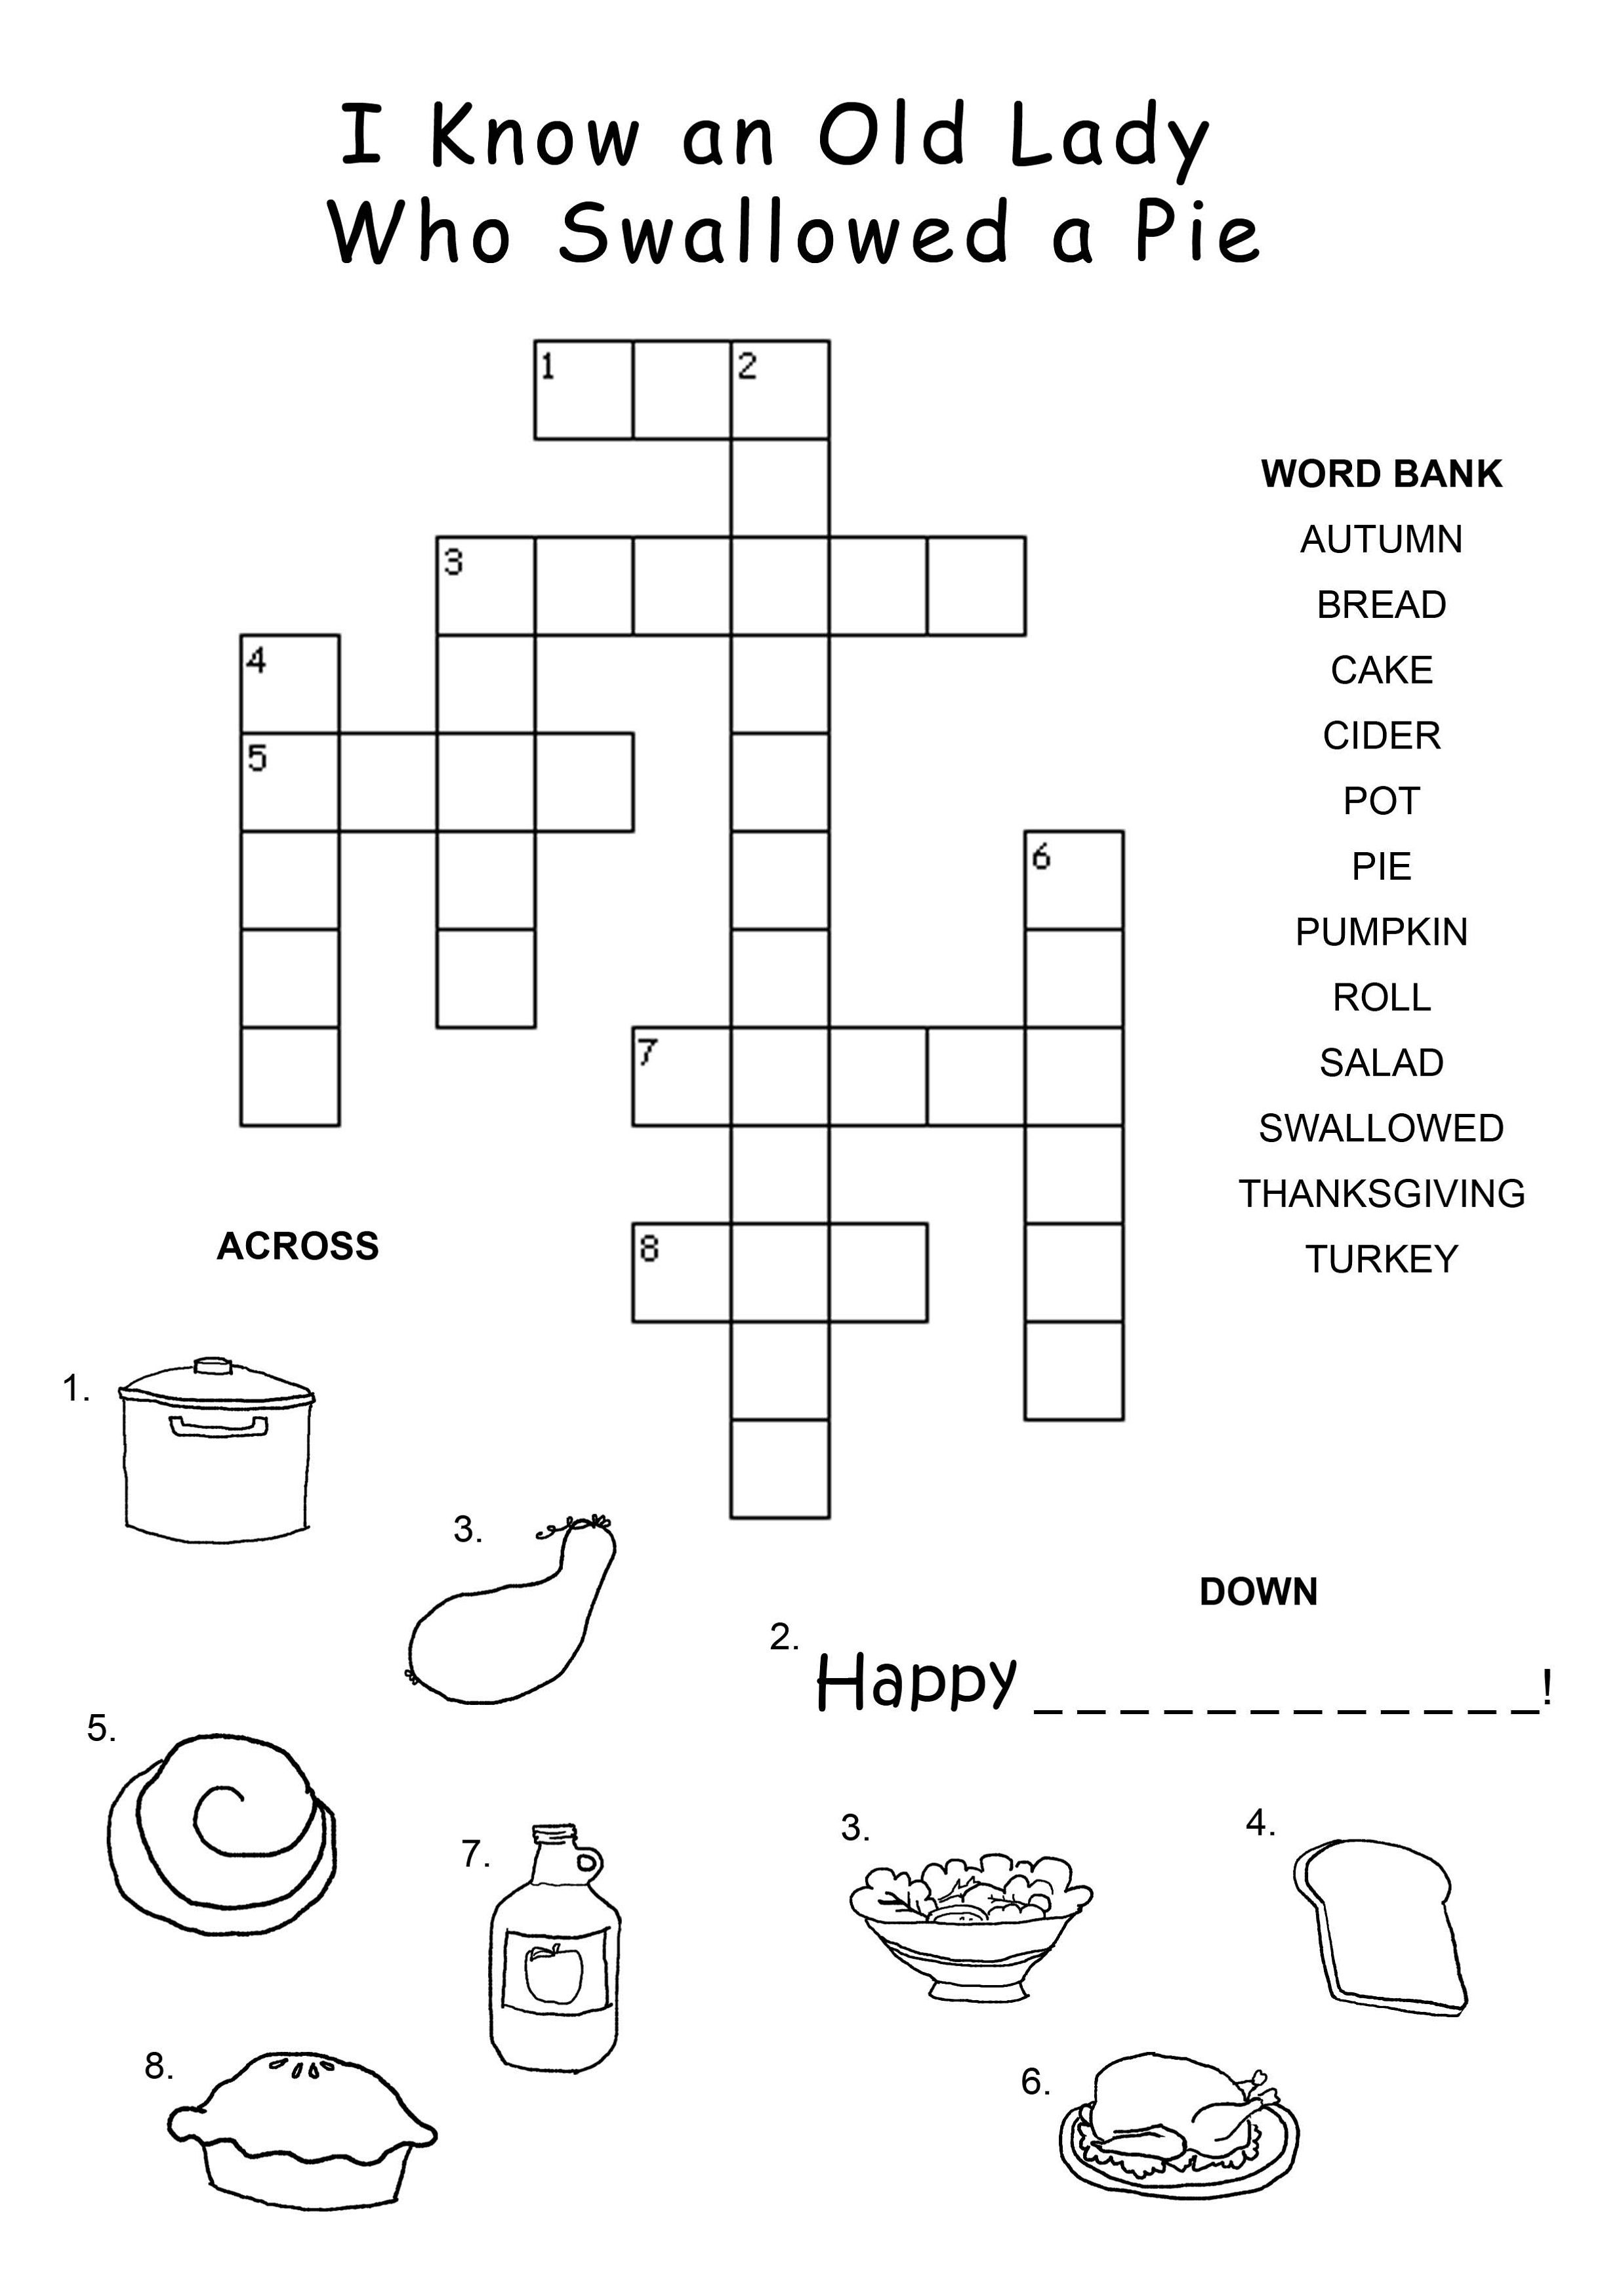 Crossword Puzzles For Kids - Best Coloring Pages For Kids - Printable Crossword Puzzles For 5 Year Olds